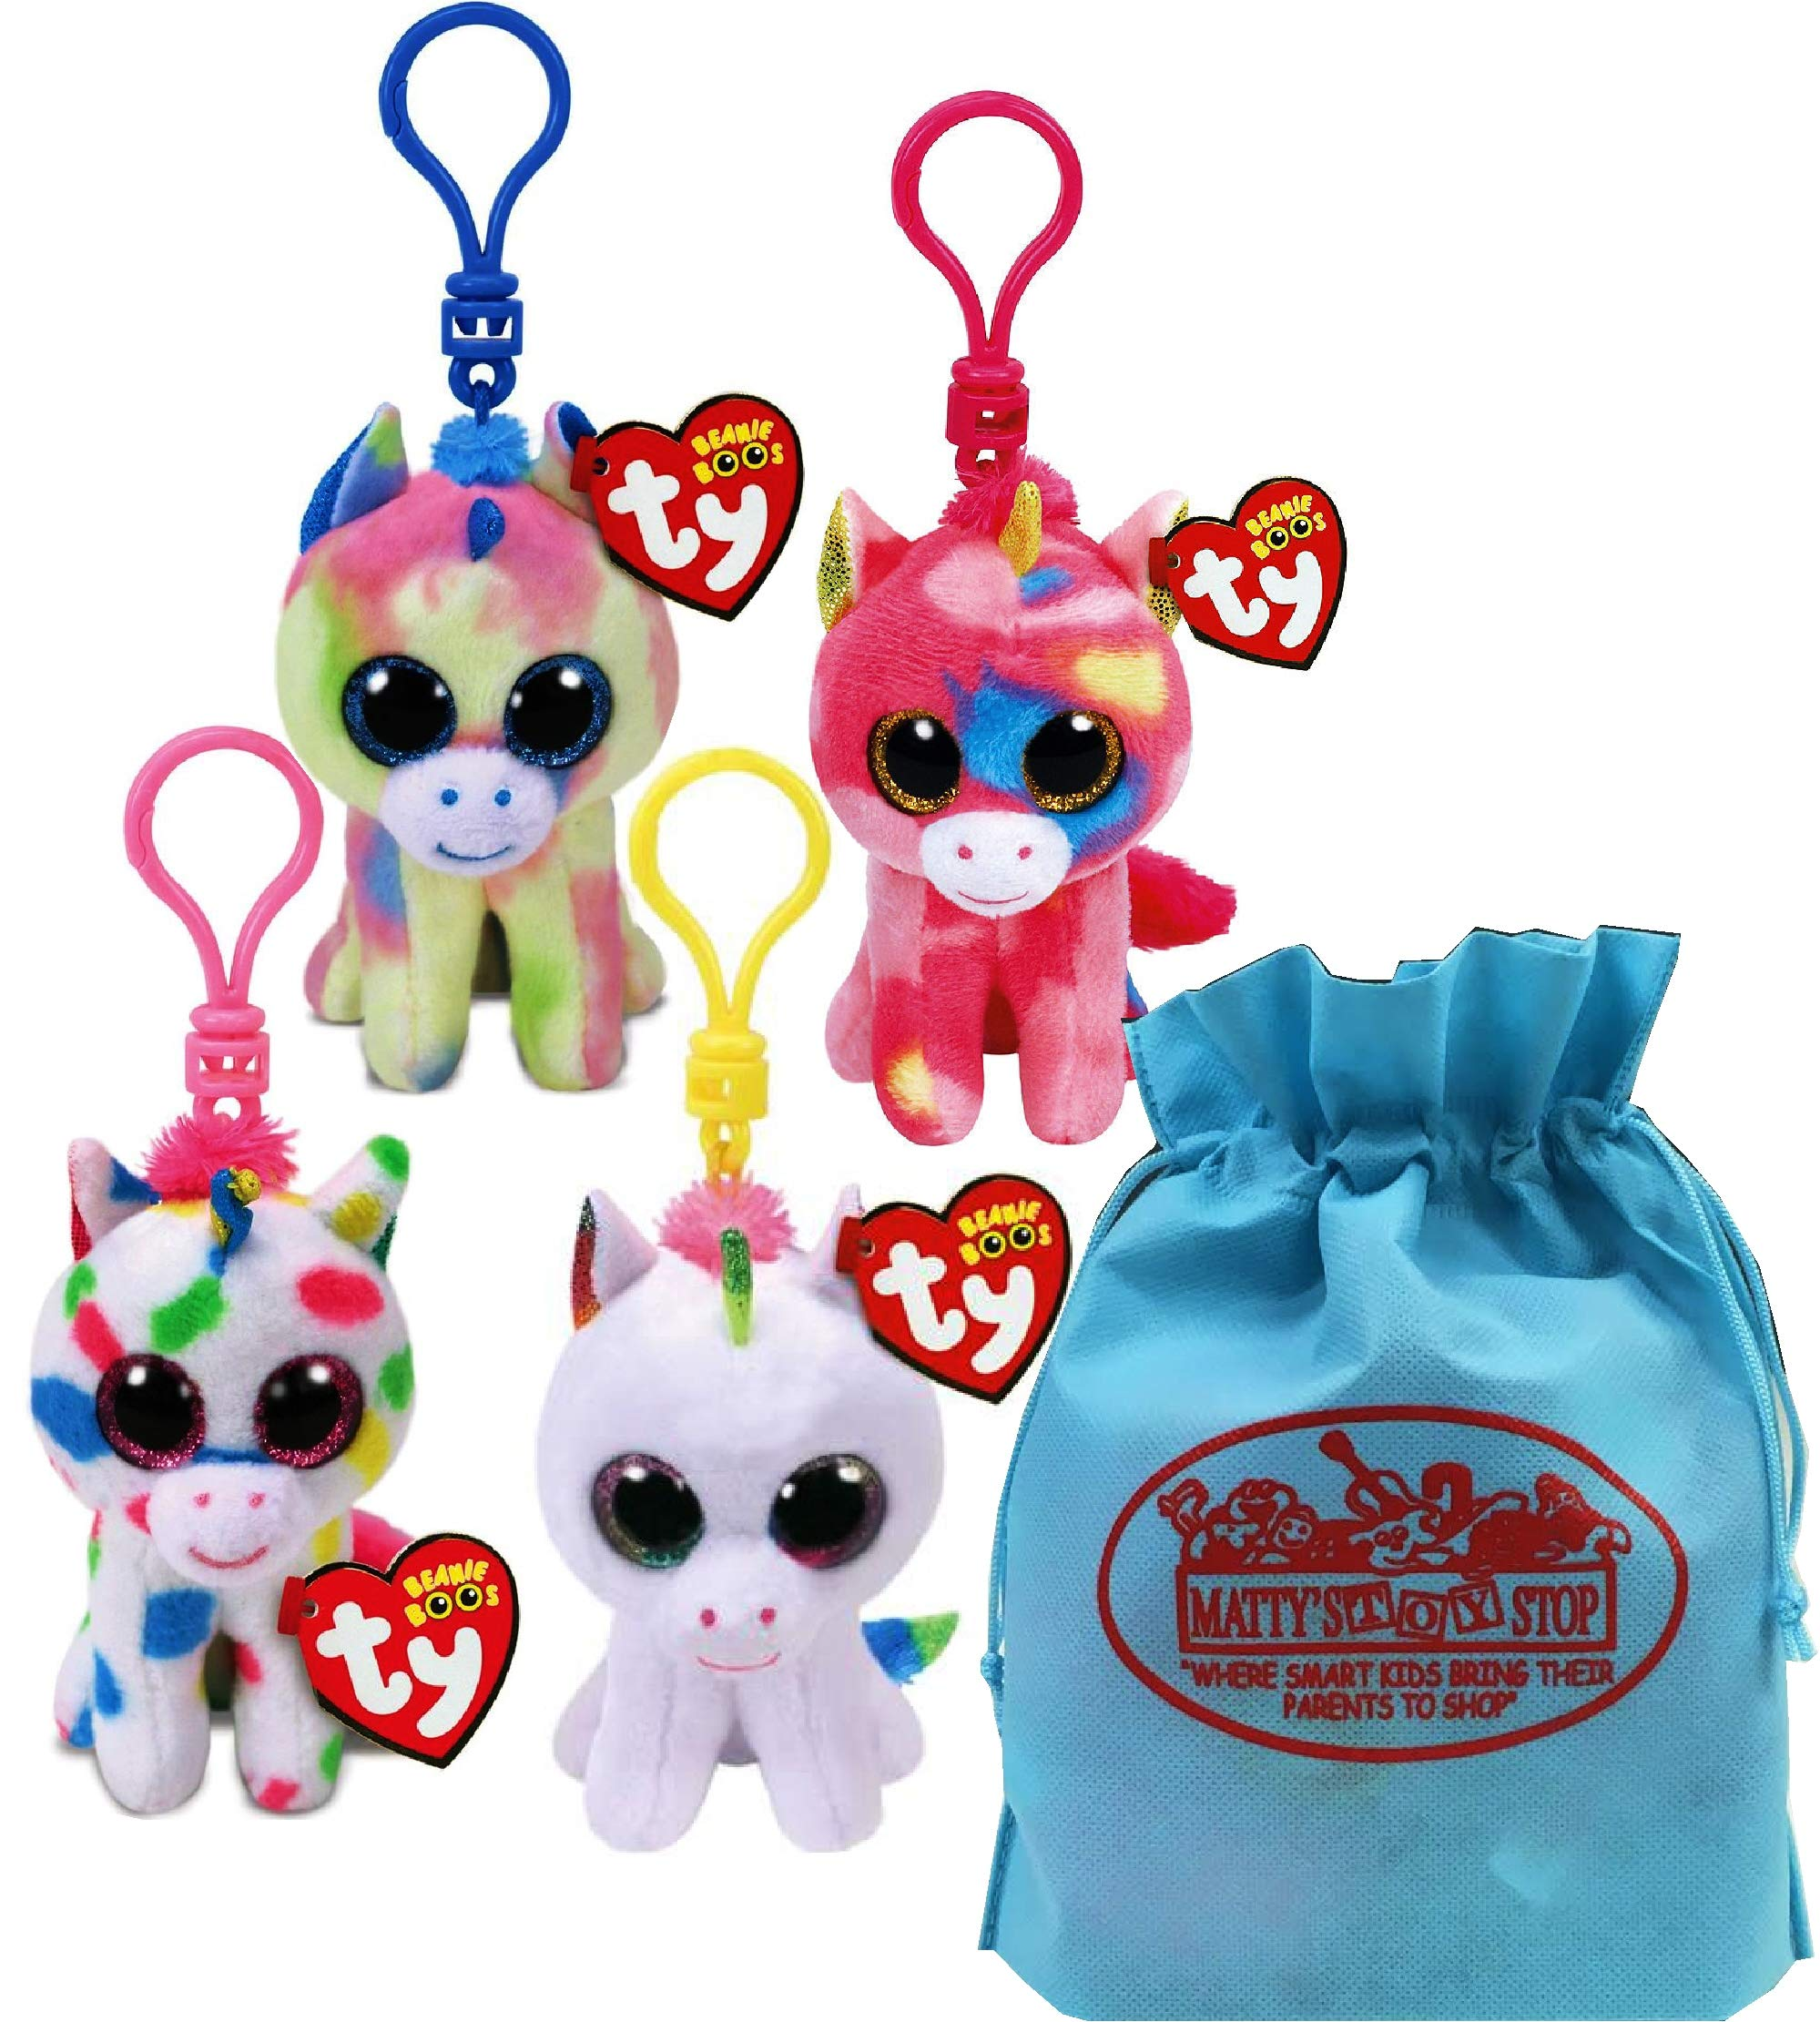 Ty Beanie Boos Clips (3'') Unicorns Blitz, Pixy, Fantasia & Harmonie Gift Set Bundle with Bonus Matty's Toy Stop Storage Bag - 4 Pack by Ty Beanie Boos